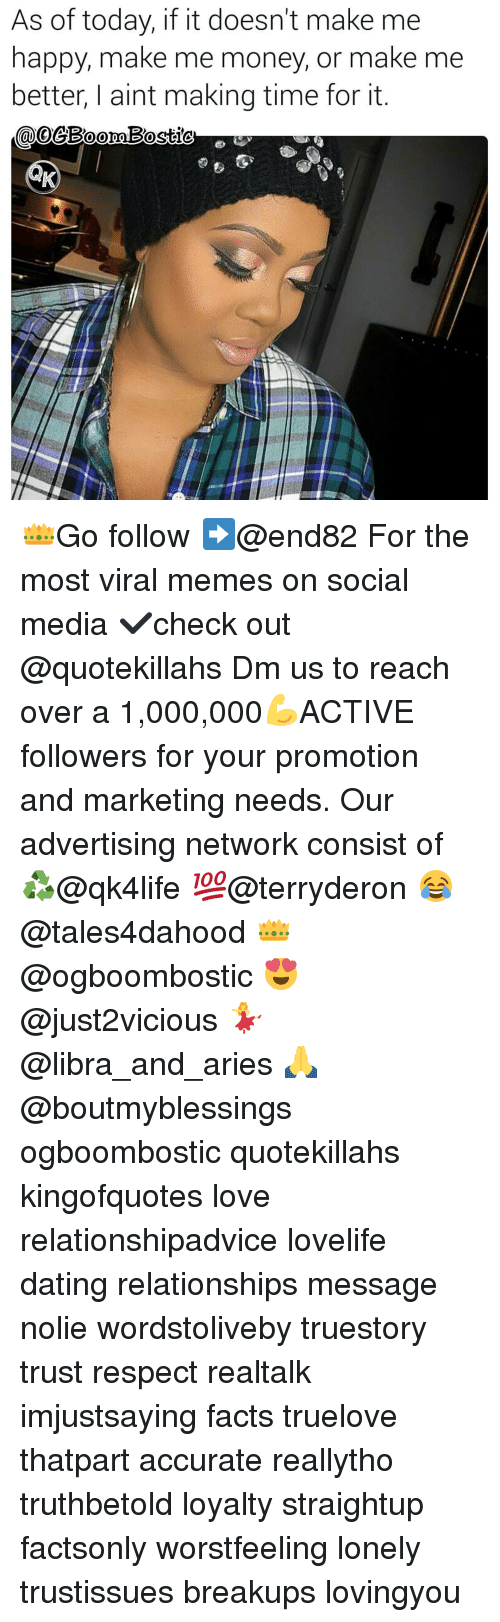 Dating, Facts, and Love: As of today, if it doesn't make me  happy, make me money, or make me  better, aint making time for it 👑Go follow ➡@end82 For the most viral memes on social media ✔check out @quotekillahs Dm us to reach over a 1,000,000💪ACTIVE followers for your promotion and marketing needs. Our advertising network consist of ♻@qk4life 💯@terryderon 😂@tales4dahood 👑@ogboombostic 😍@just2vicious 💃@libra_and_aries 🙏@boutmyblessings ogboombostic quotekillahs kingofquotes love relationshipadvice lovelife dating relationships message nolie wordstoliveby truestory trust respect realtalk imjustsaying facts truelove thatpart accurate reallytho truthbetold loyalty straightup factsonly worstfeeling lonely trustissues breakups lovingyou